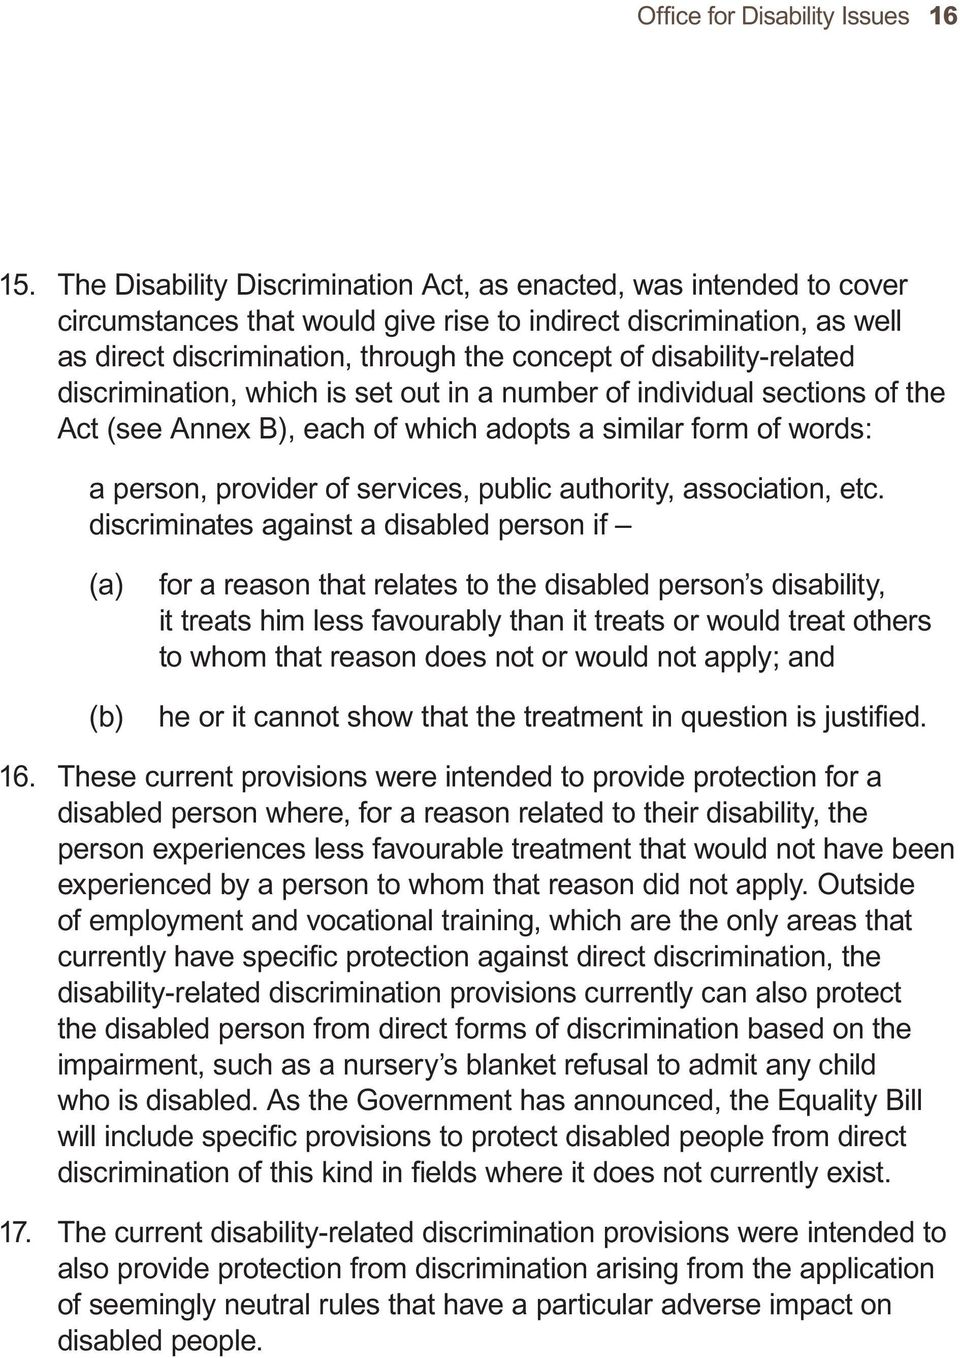 disability-related discrimination, which is set out in a number of individual sections of the Act (see Annex B), each of which adopts a similar form of words: a person, provider of services, public